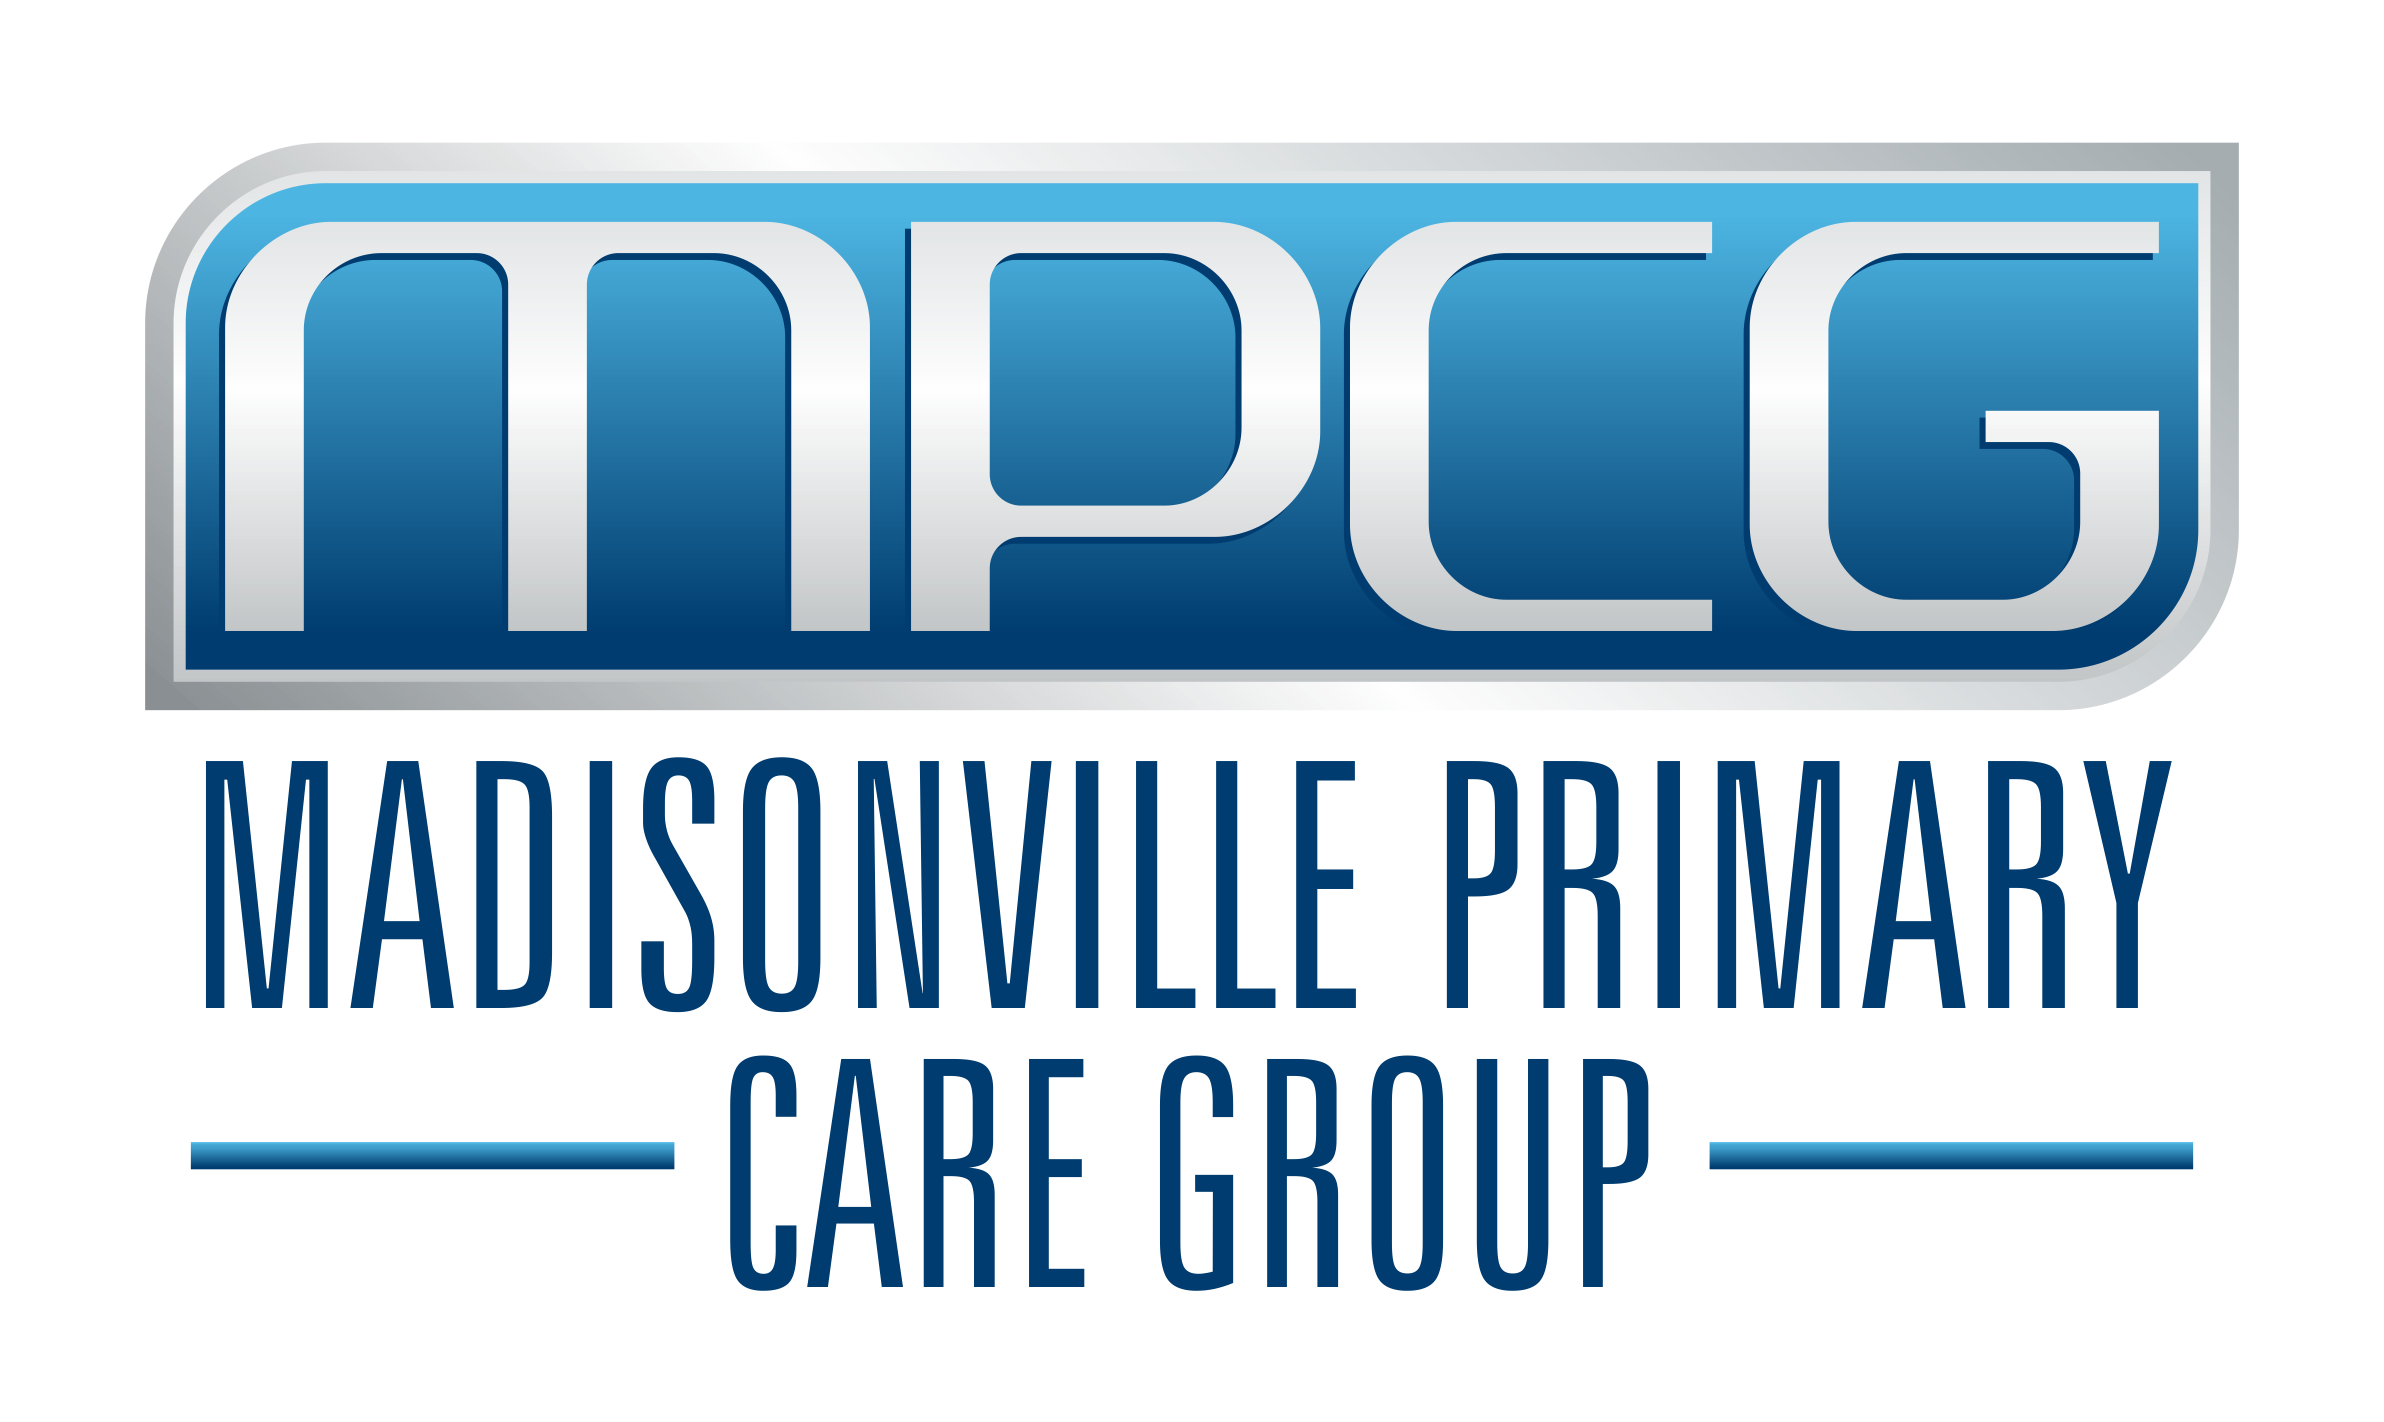 Madisonville Primary Care Group